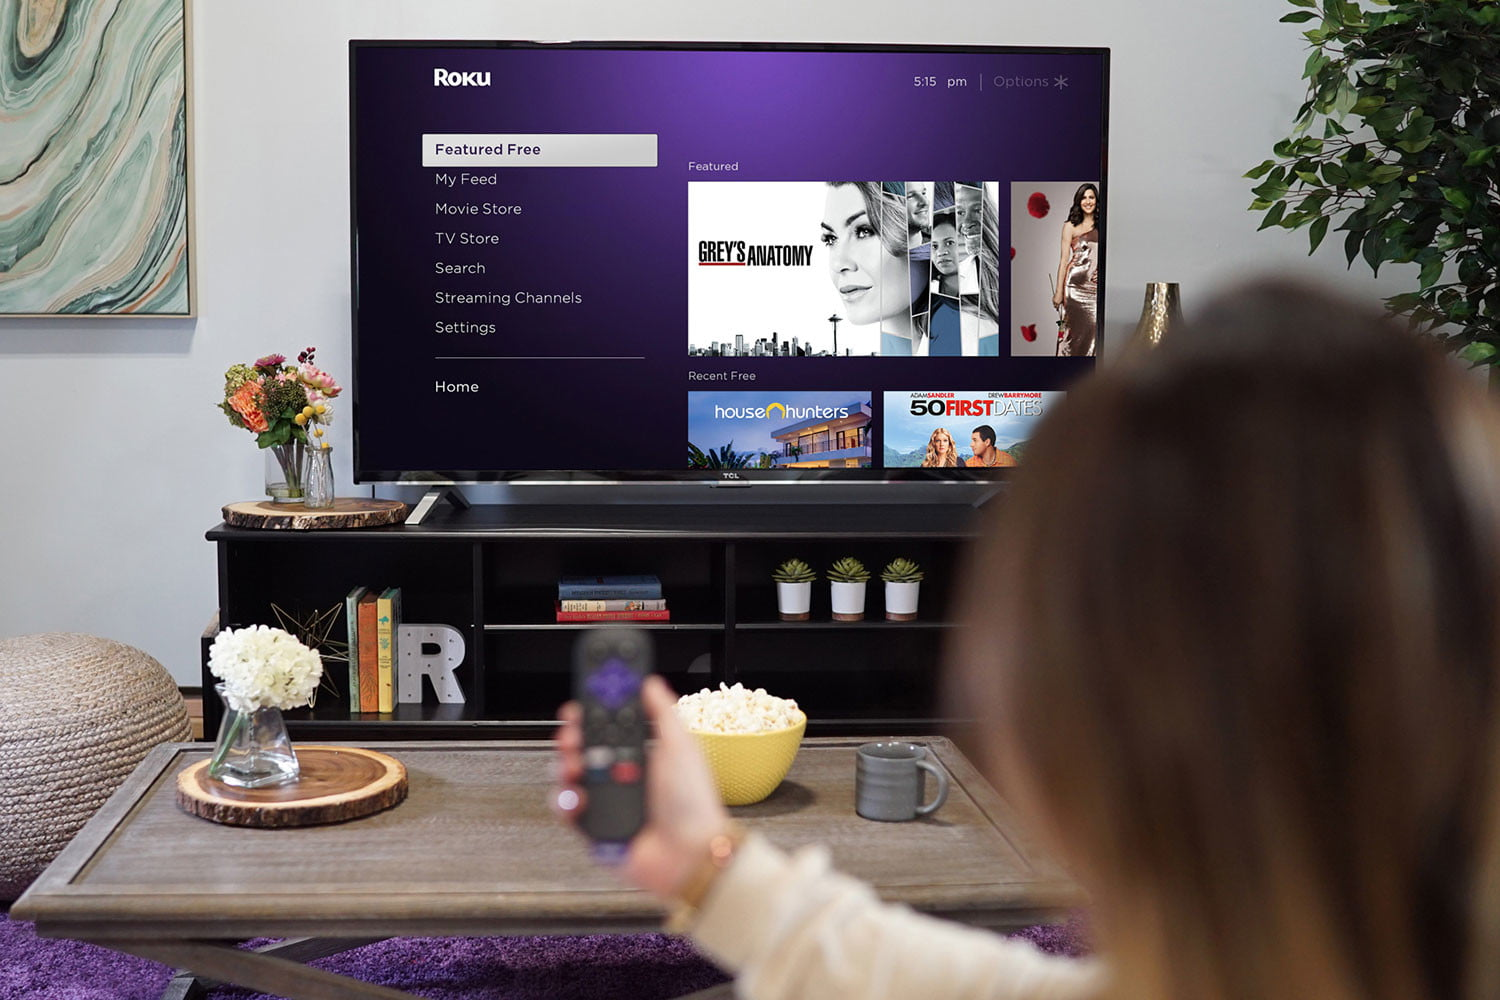 How to Connect Your Roku Device to a Hotel Room TV | Digital